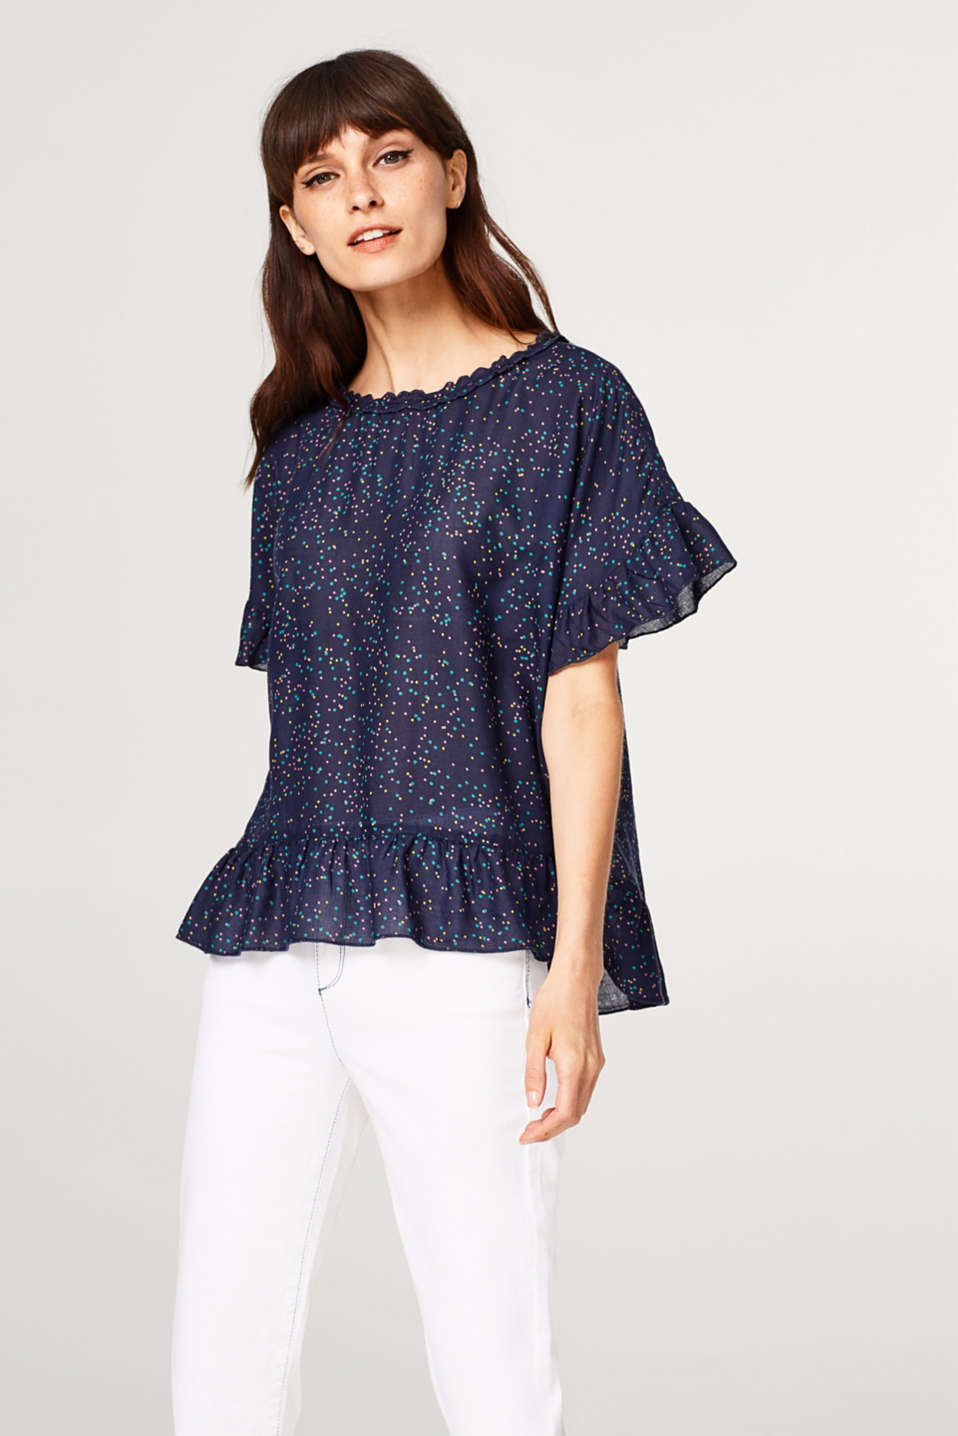 Esprit - Dainty blouse with colourful polka dots and a flounce hem